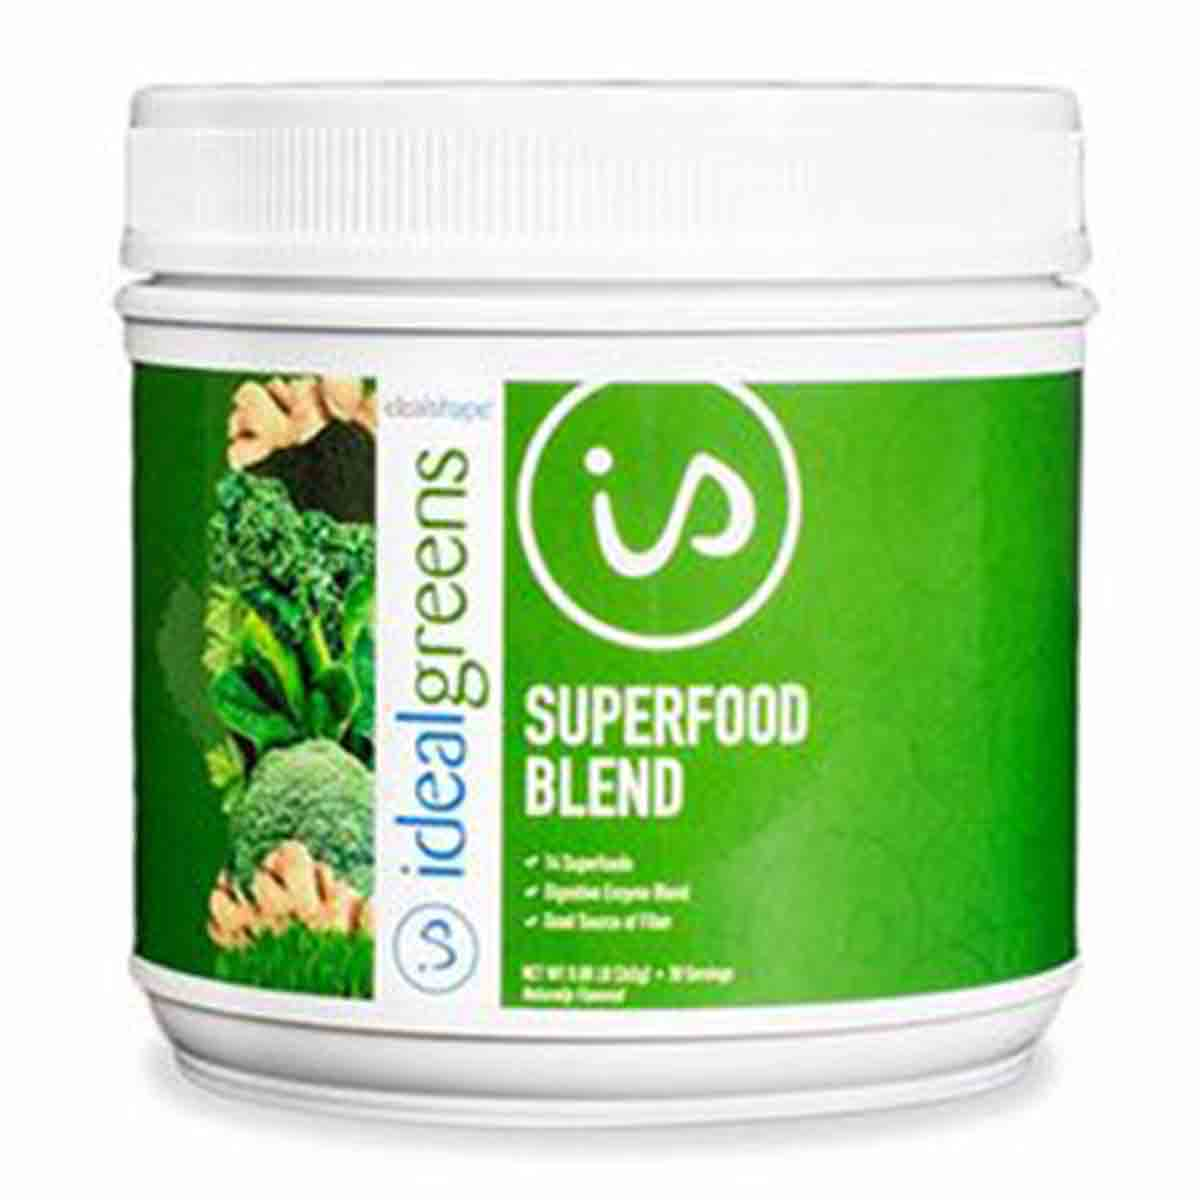 IdealGreens Superfood Blend